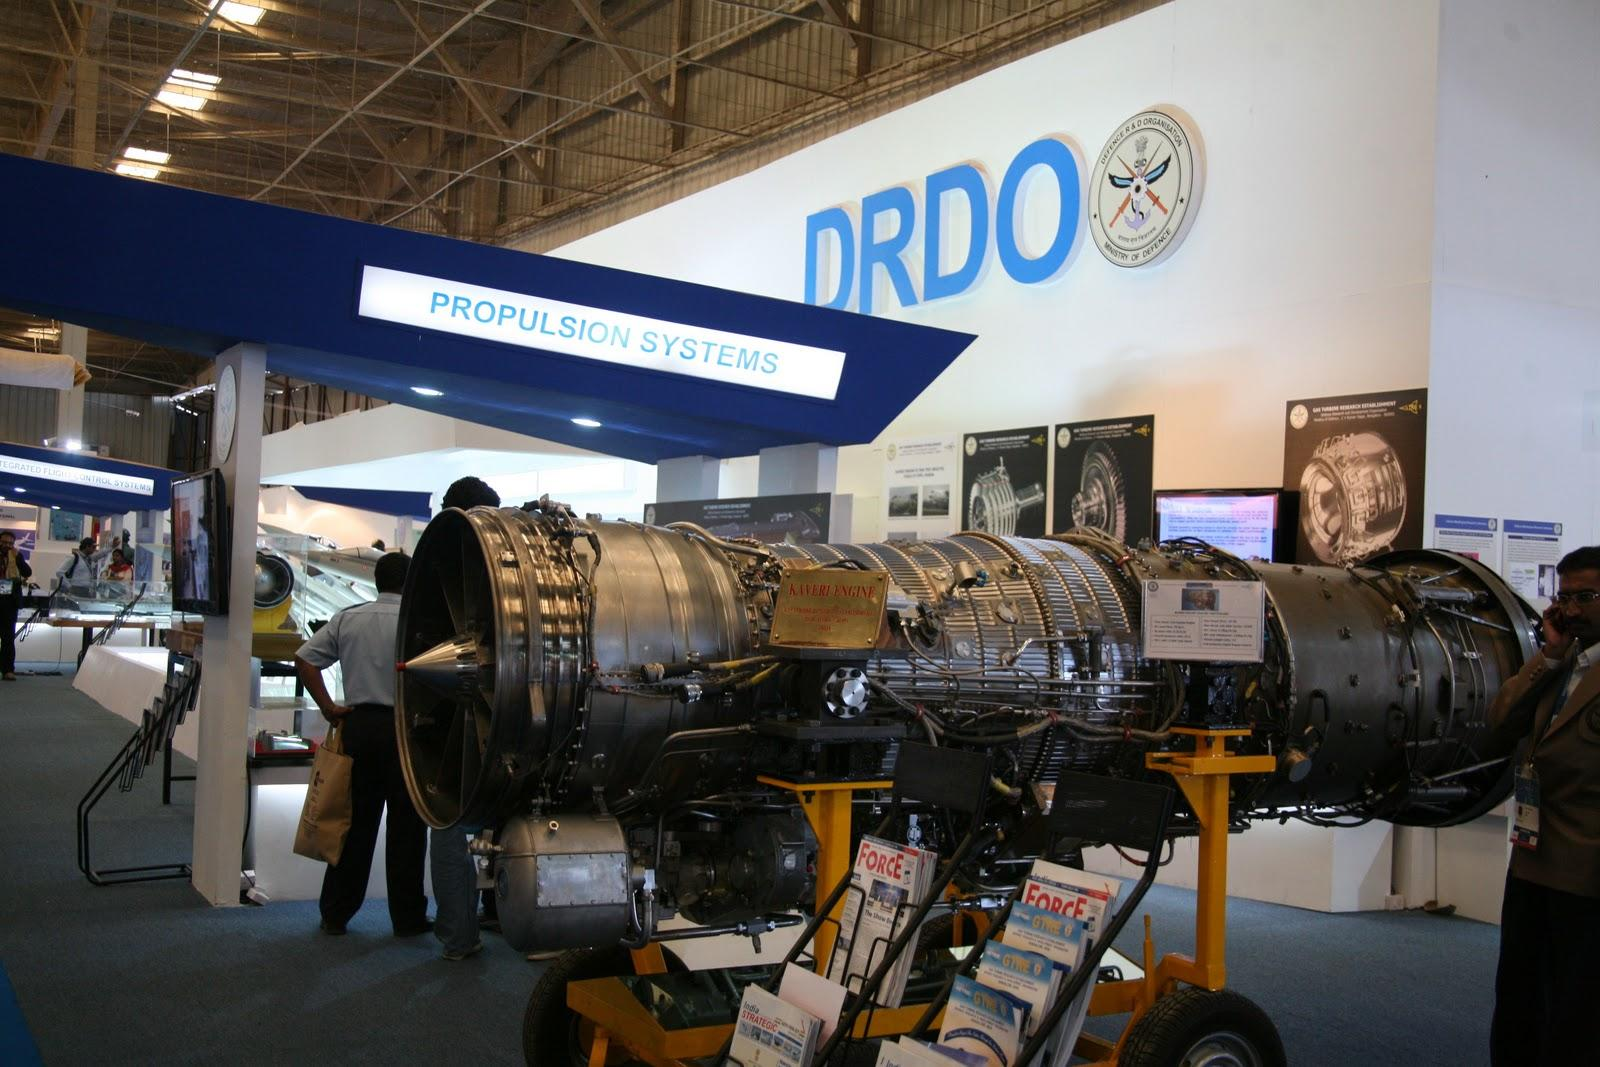 India will start developing its own fighter jet engine now, thanks to France